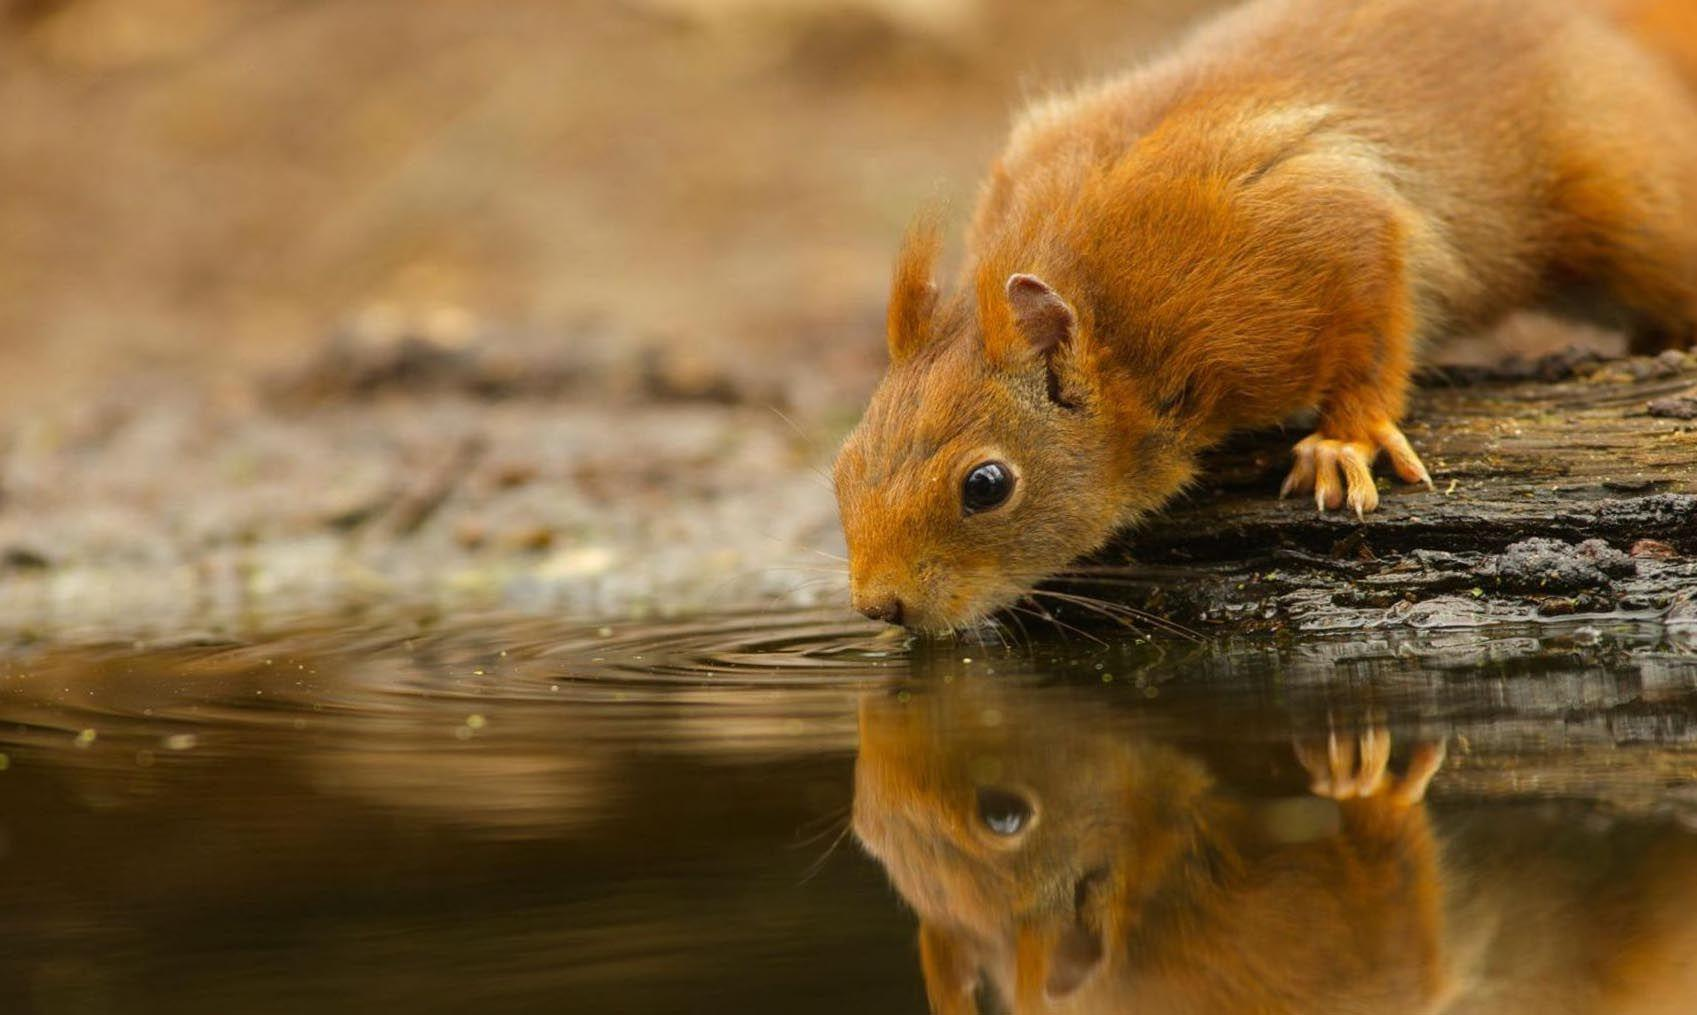 Cute Baby Wild Animals Wallpapers - Wallpaper Cave